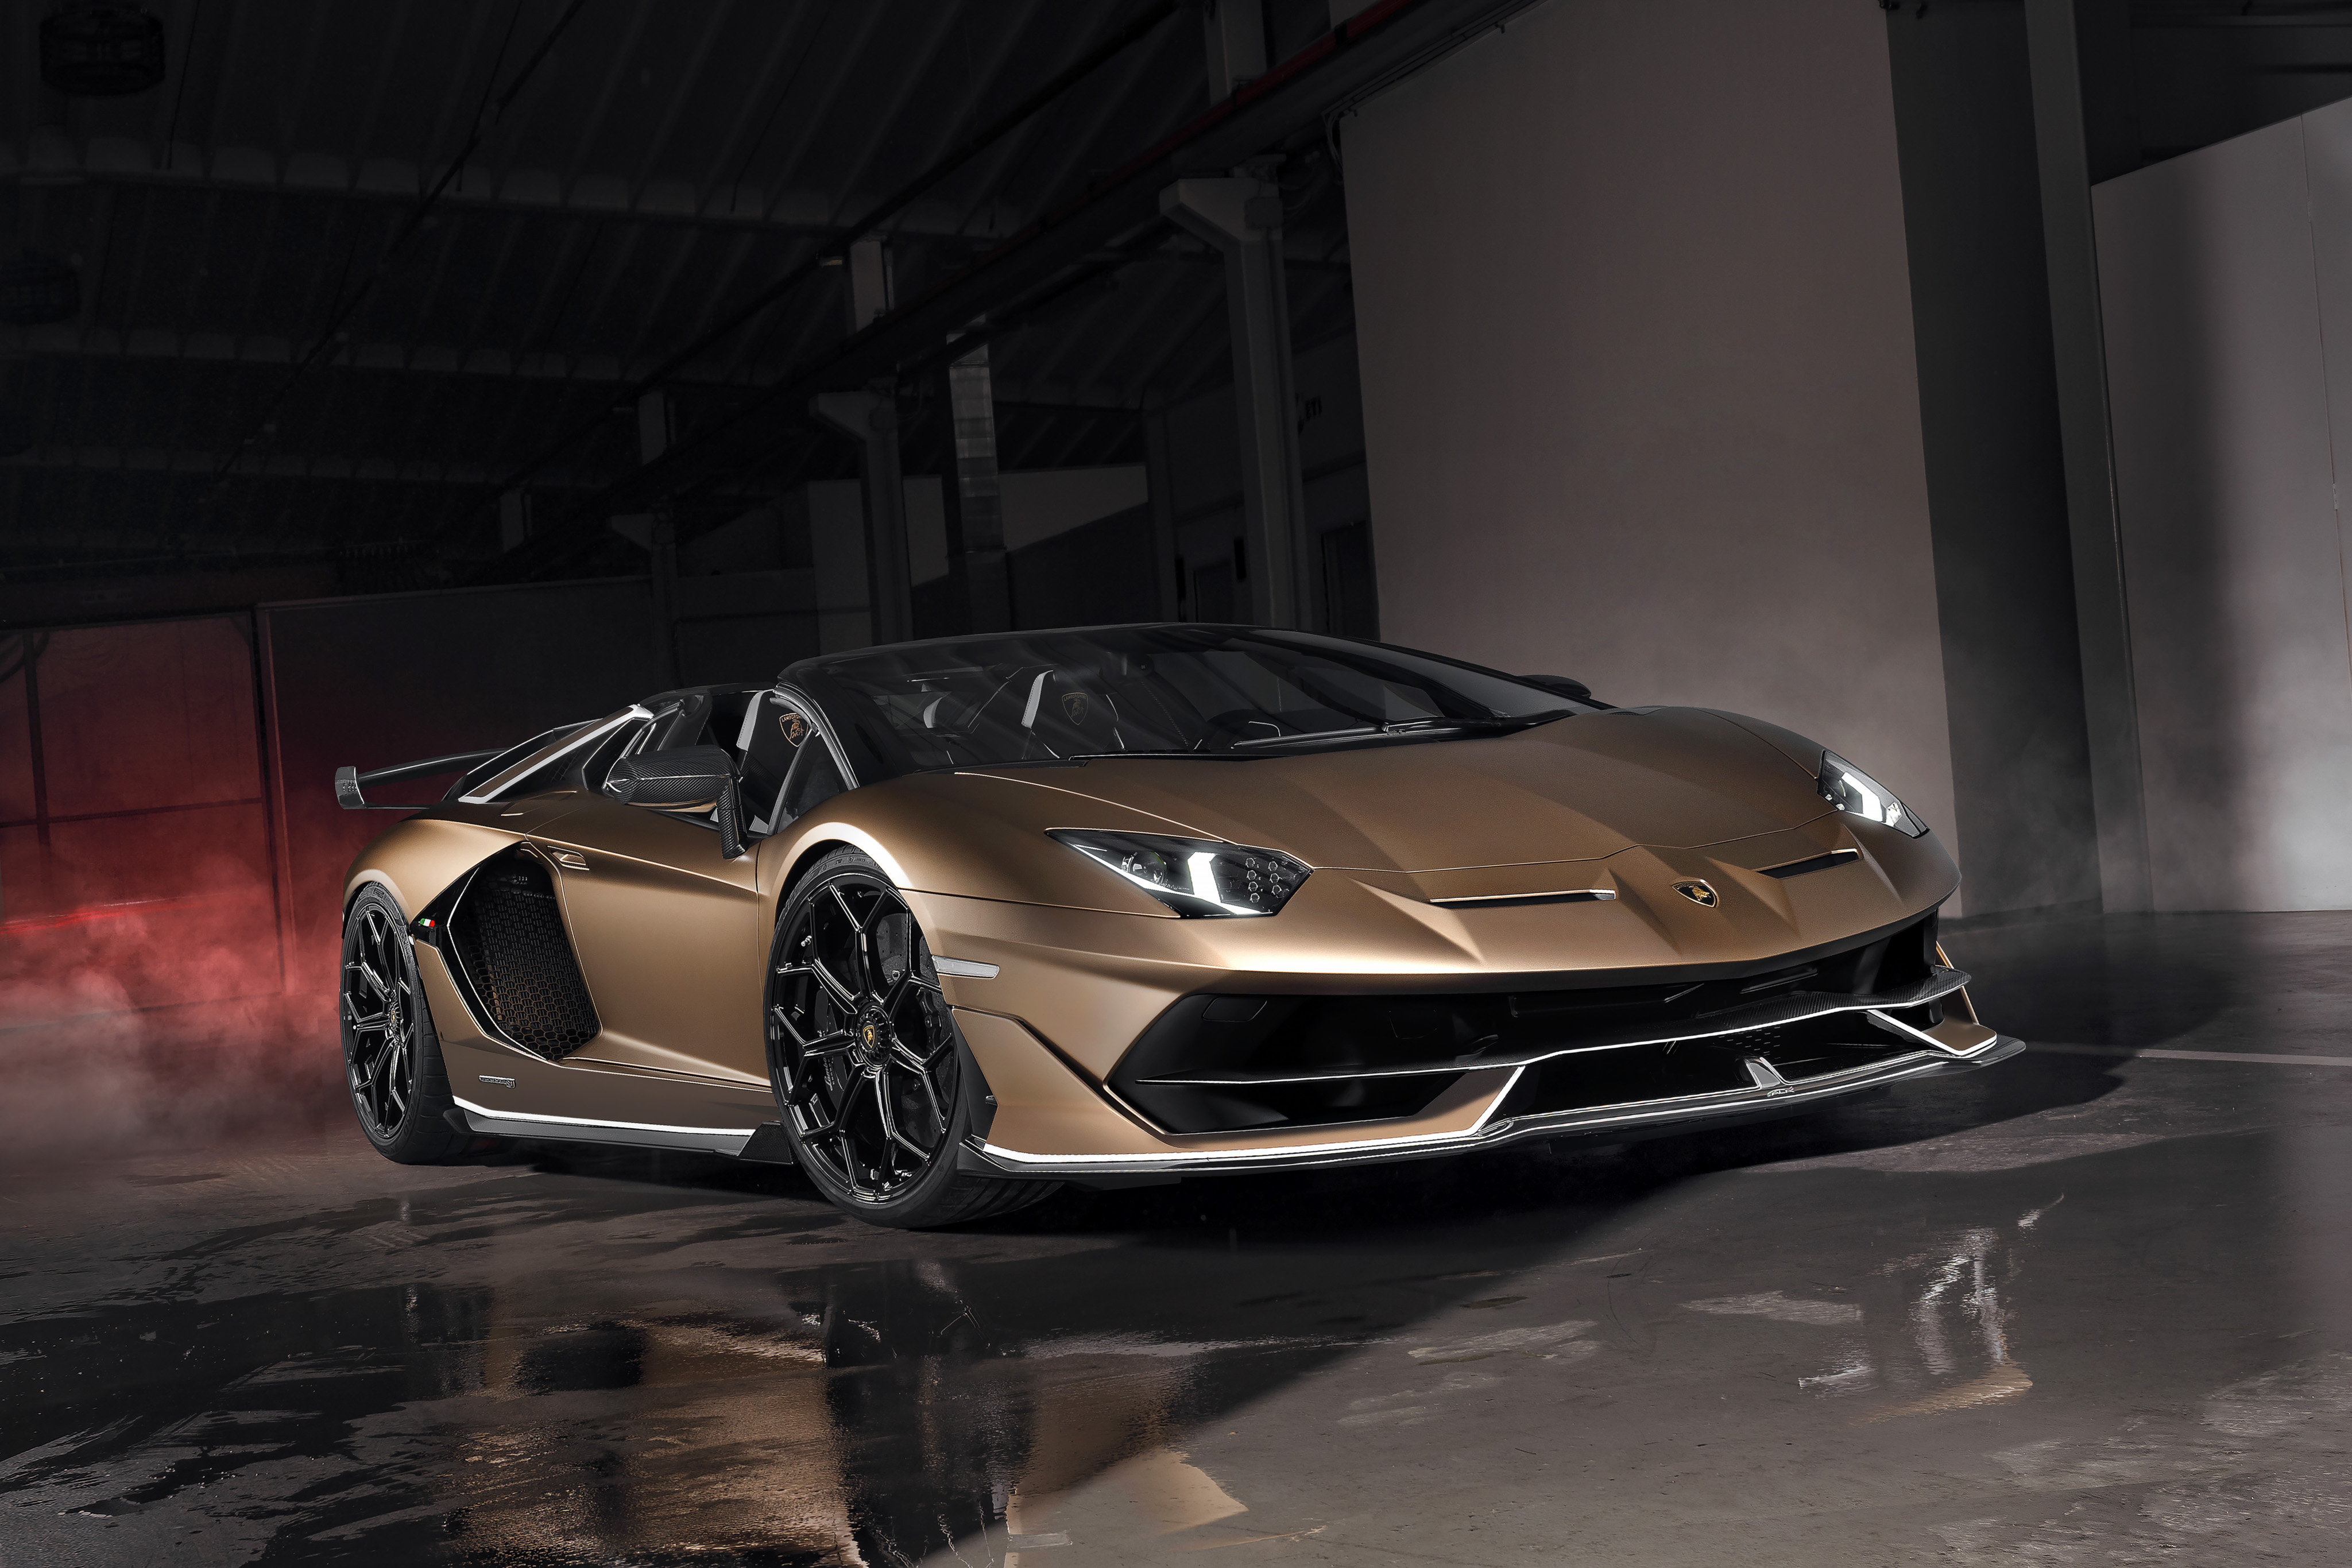 The 2020 Lamborghini Aventador Svj Roadster Is Just A Hair